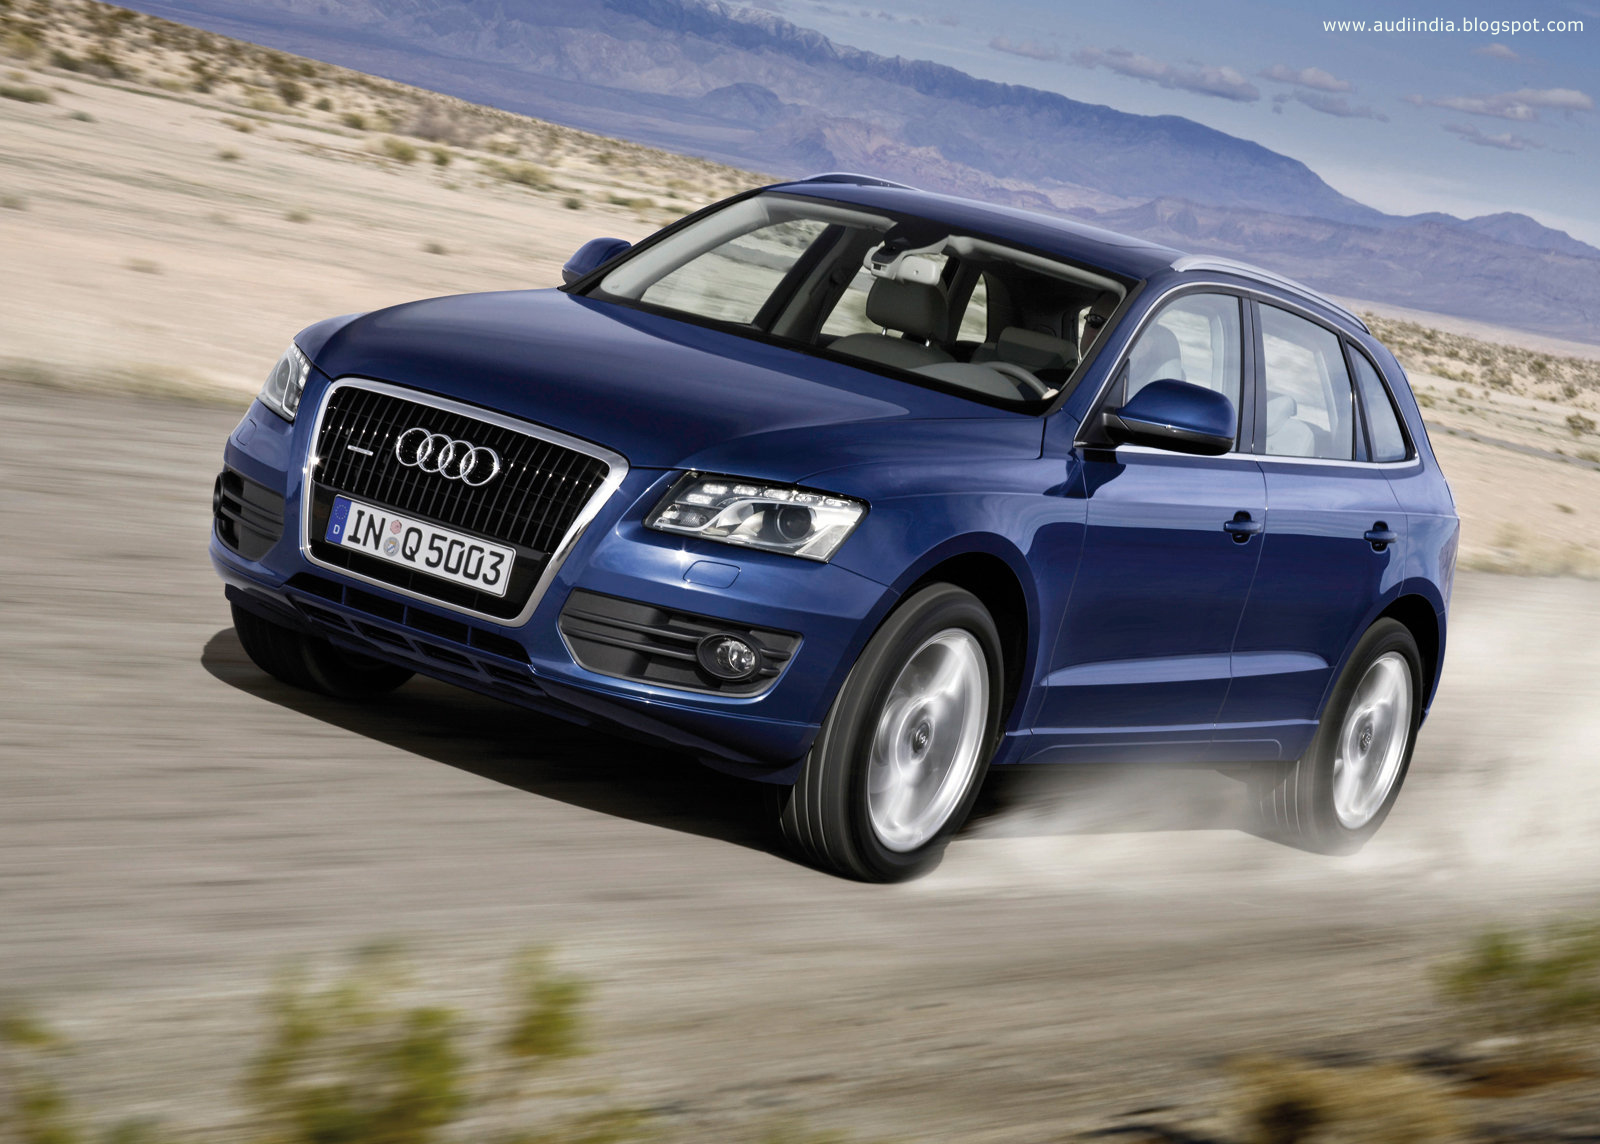 audi q5 2 0 tfsi technical specifications technical data the world of audi. Black Bedroom Furniture Sets. Home Design Ideas